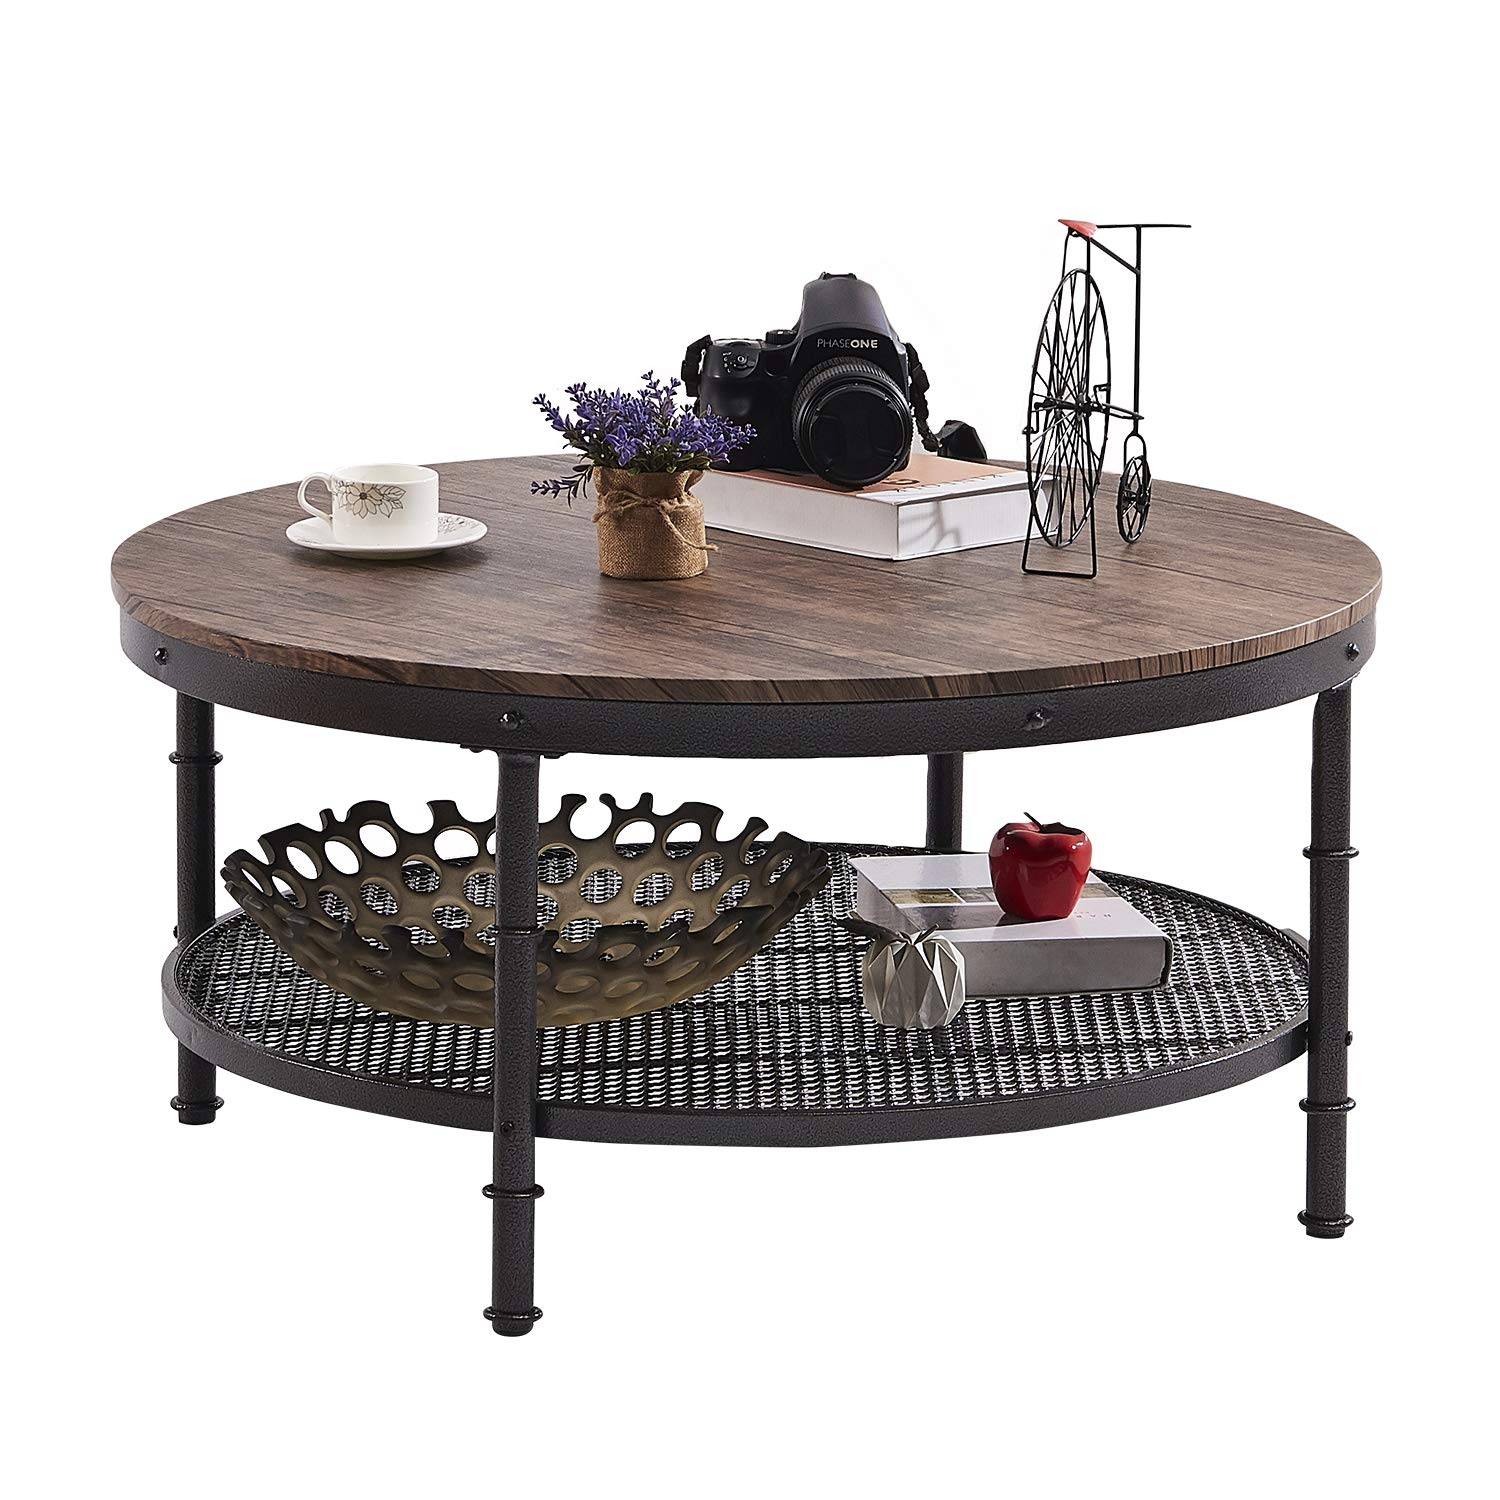 GreenForest - Coffee Table Round Industrial Design Metal Legs with Storage Open Shelf for Living Room, Rustic Walnut by GreenForest